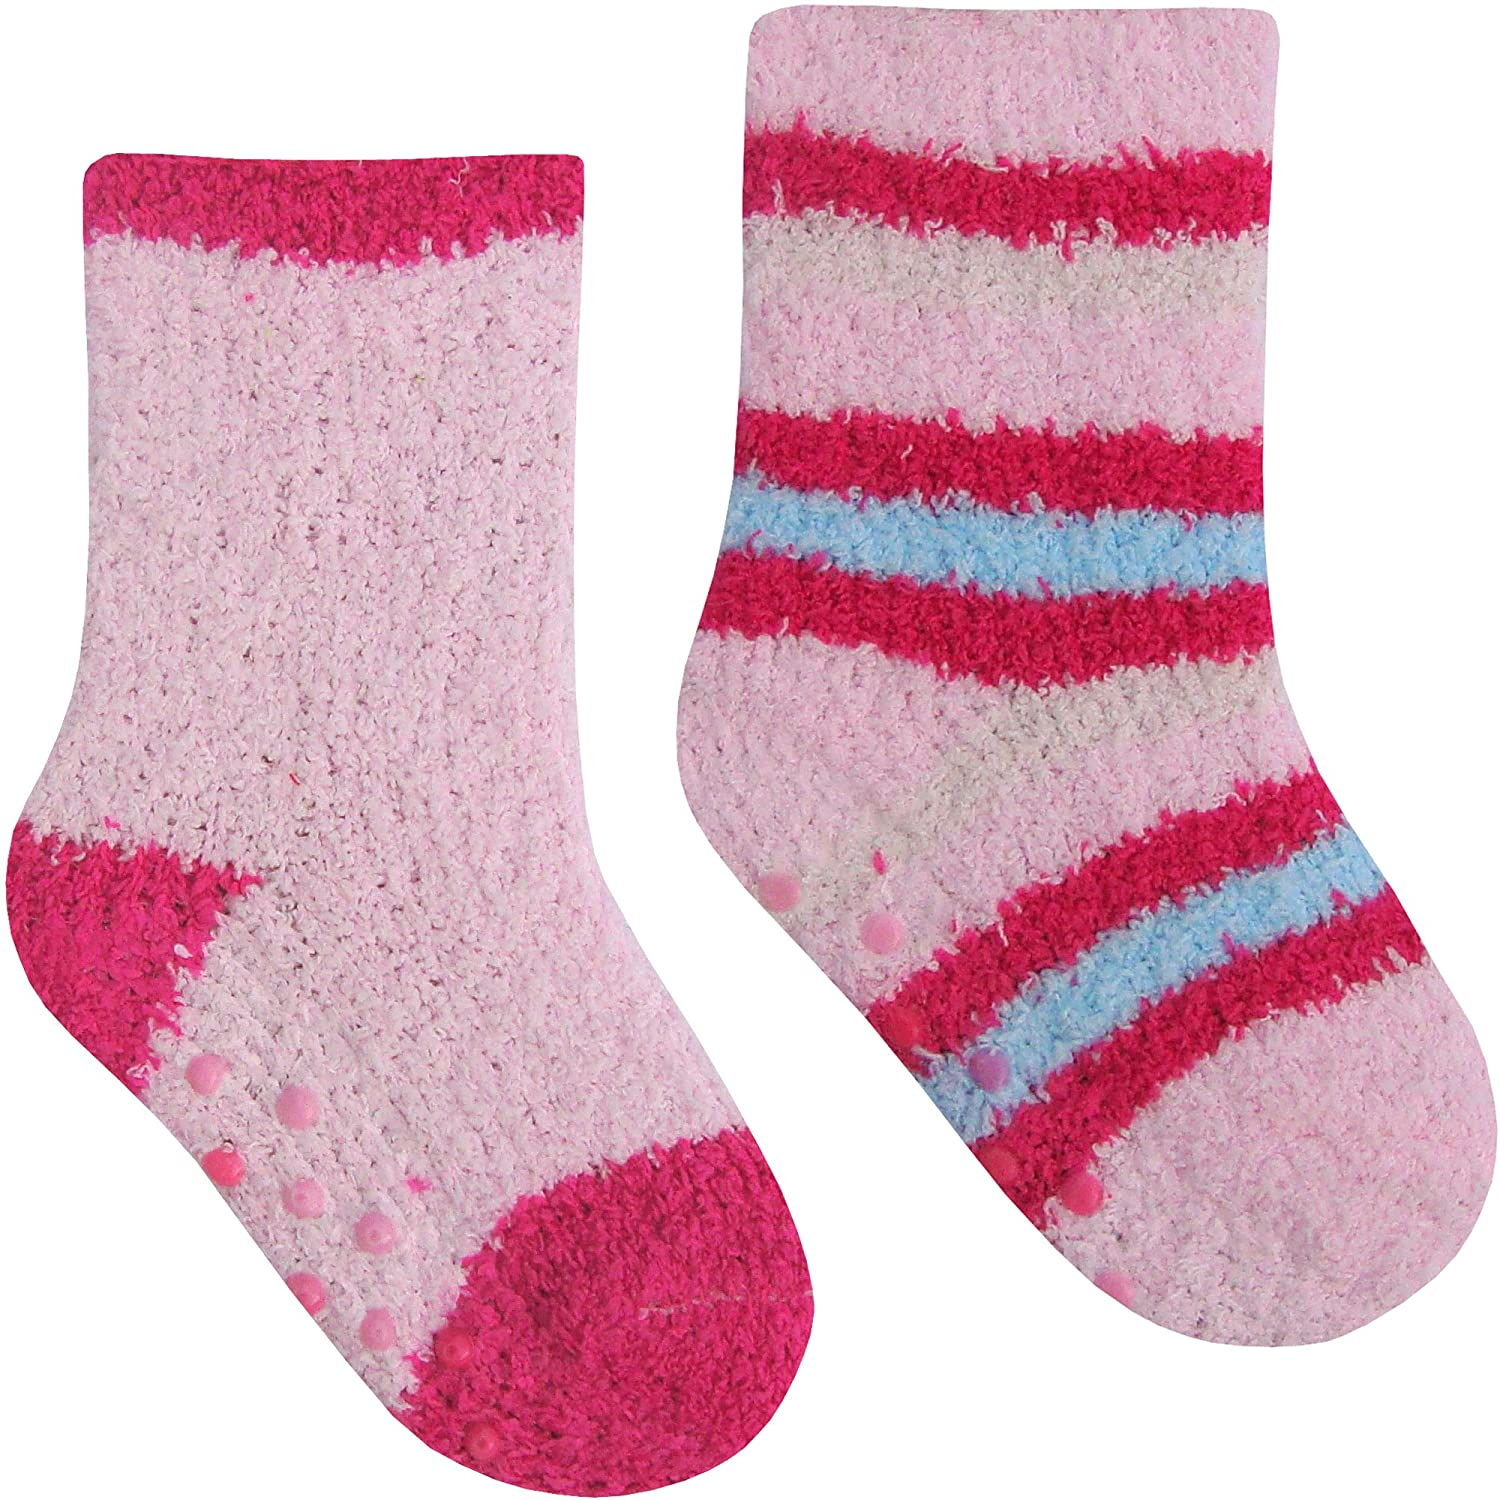 Baby Girls Super Soft & Fluffy Cosy Gripper Socks 2 Pair Pack